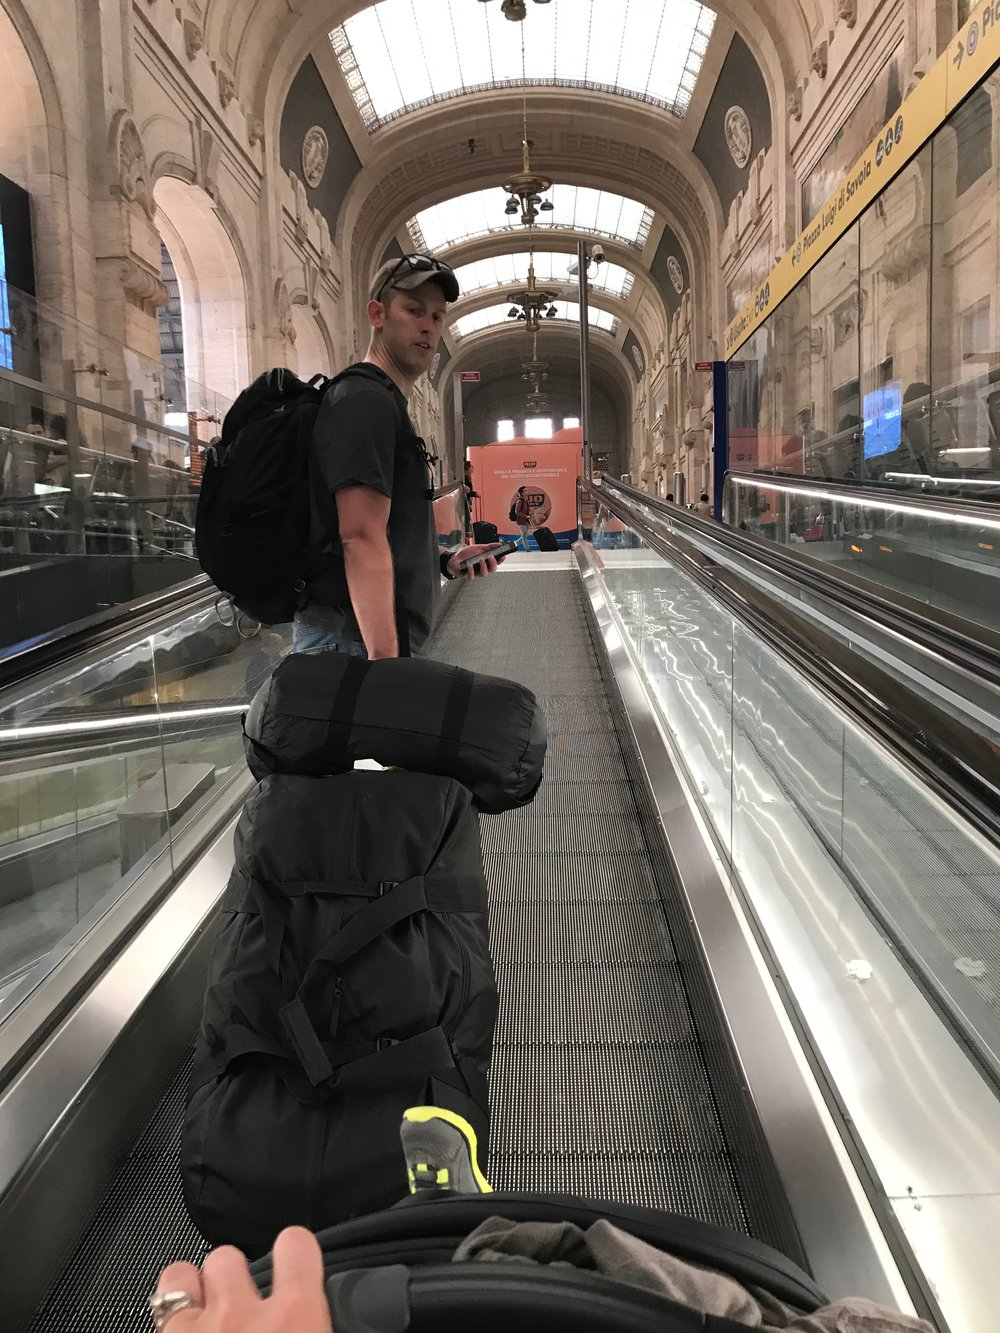 We managed to bring only what you see for 21 days in Europe; lucky us - it was way less to manage! (And FREE on our train rides)